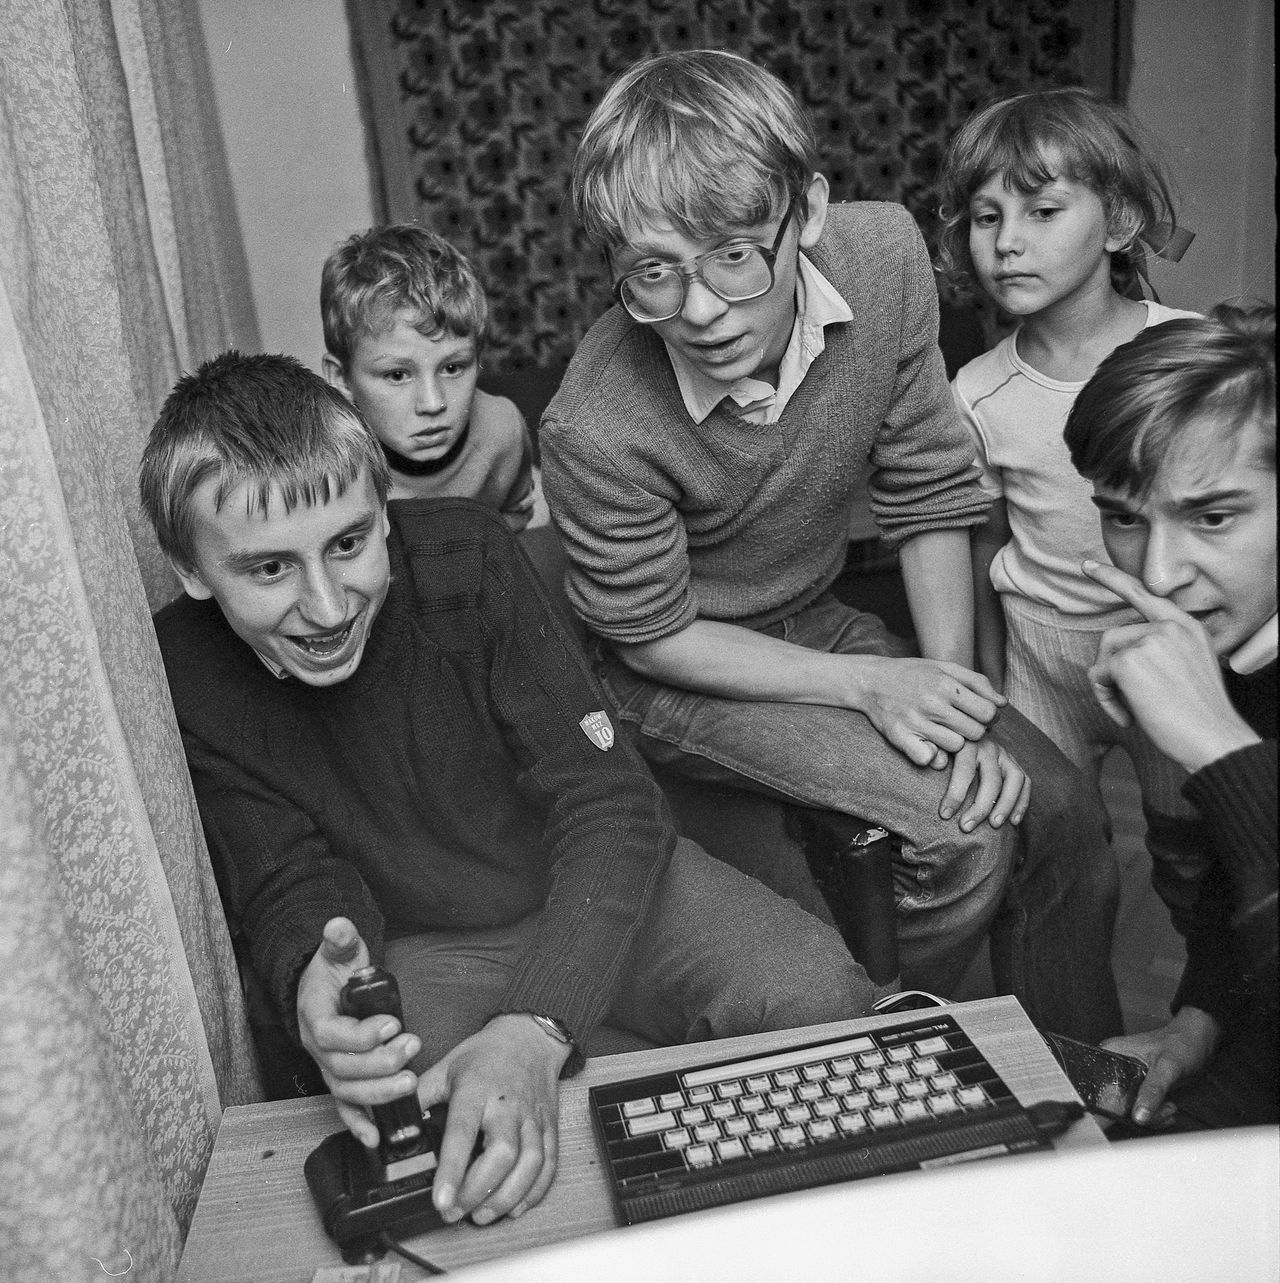 Boys Computer Computer Game Emotions Emotions Captured Emotions In A Picture Emotions Of The Eyes Friendship Gaming Gaming Gear Gaming Time Gamingcomputer Group Of People Indoors  Joystick Lifestyles Playing Playing Games Real People Sitting Spectrum Technology Timex Togetherness BYOPaper! The Photojournalist - 2017 EyeEm Awards The Portraitist - 2017 EyeEm Awards